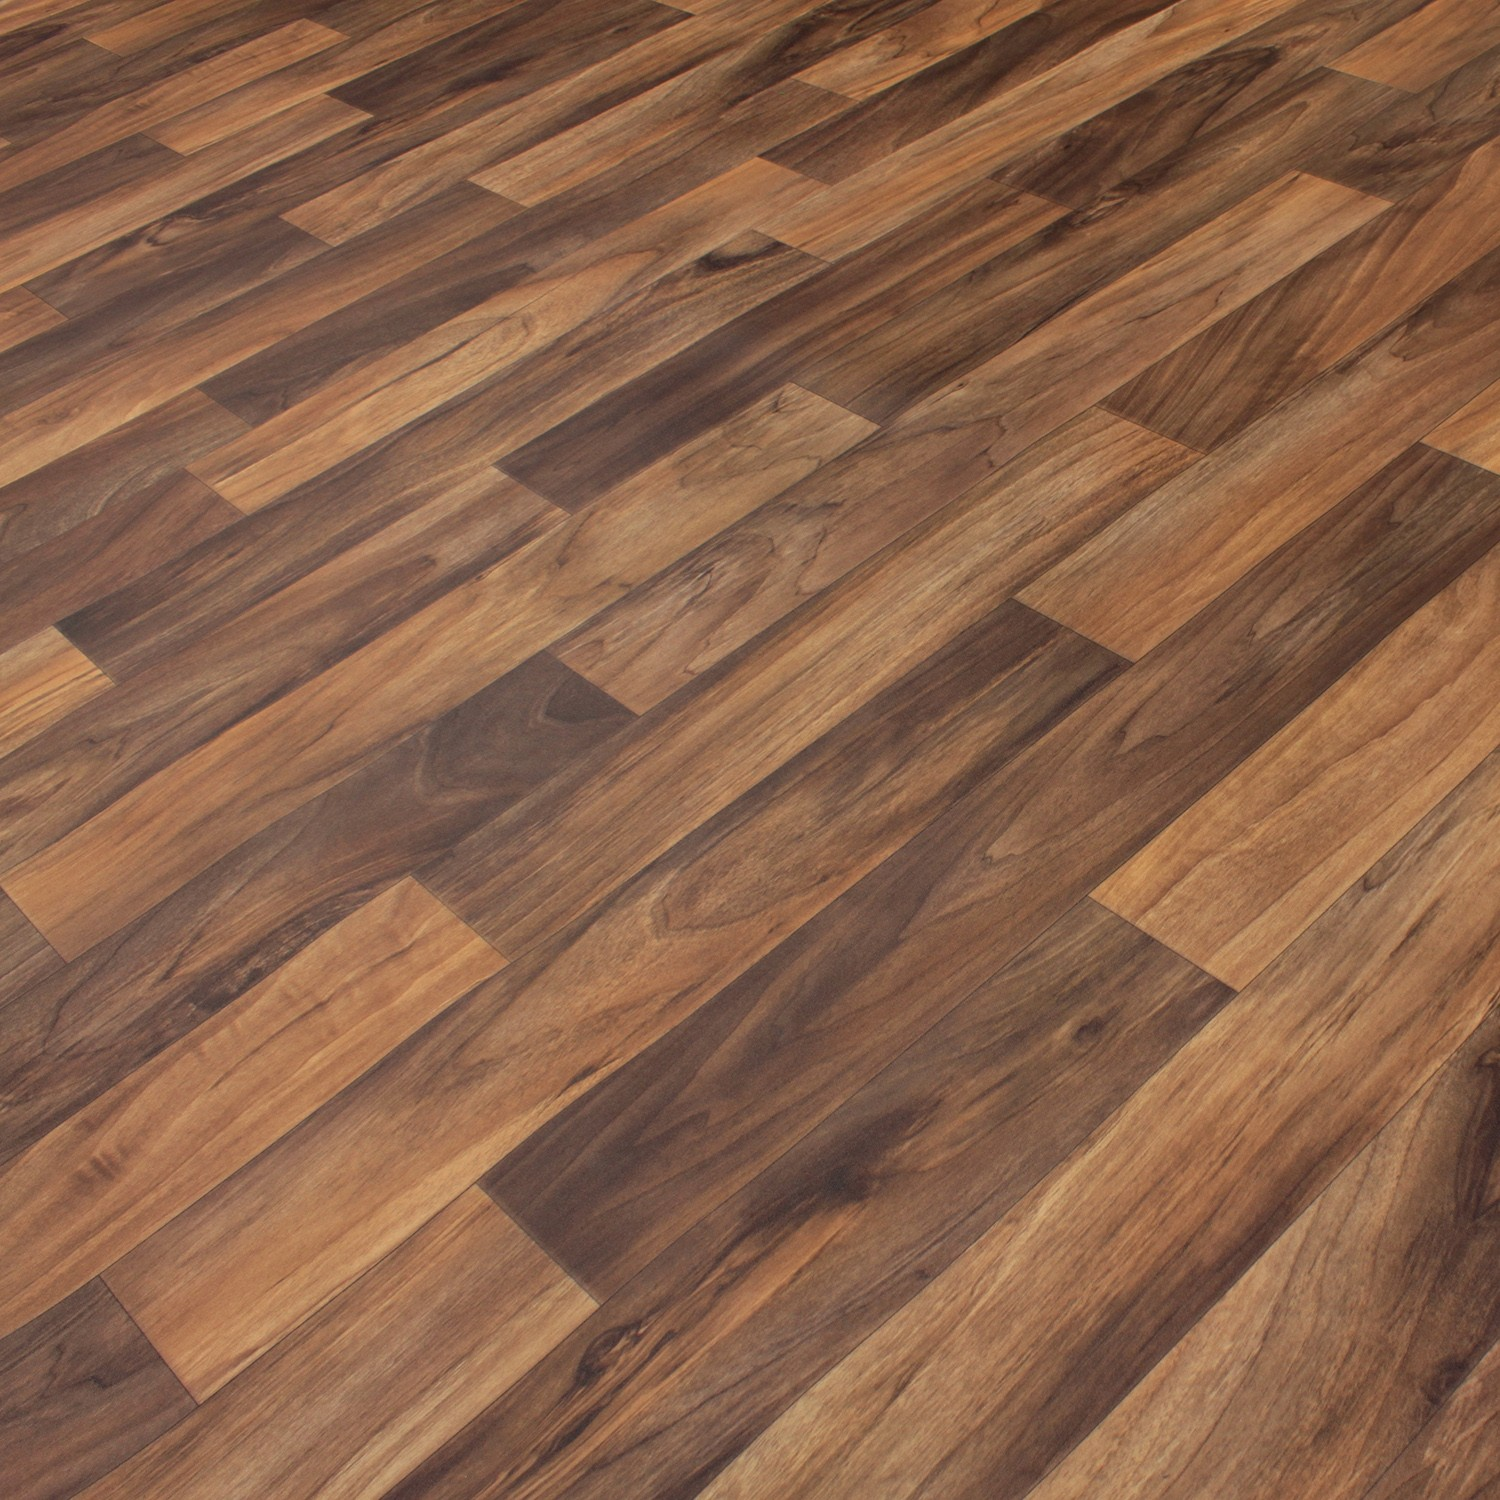 2m wide high quality vinyl flooring dark wood designs for Wooden floor lino